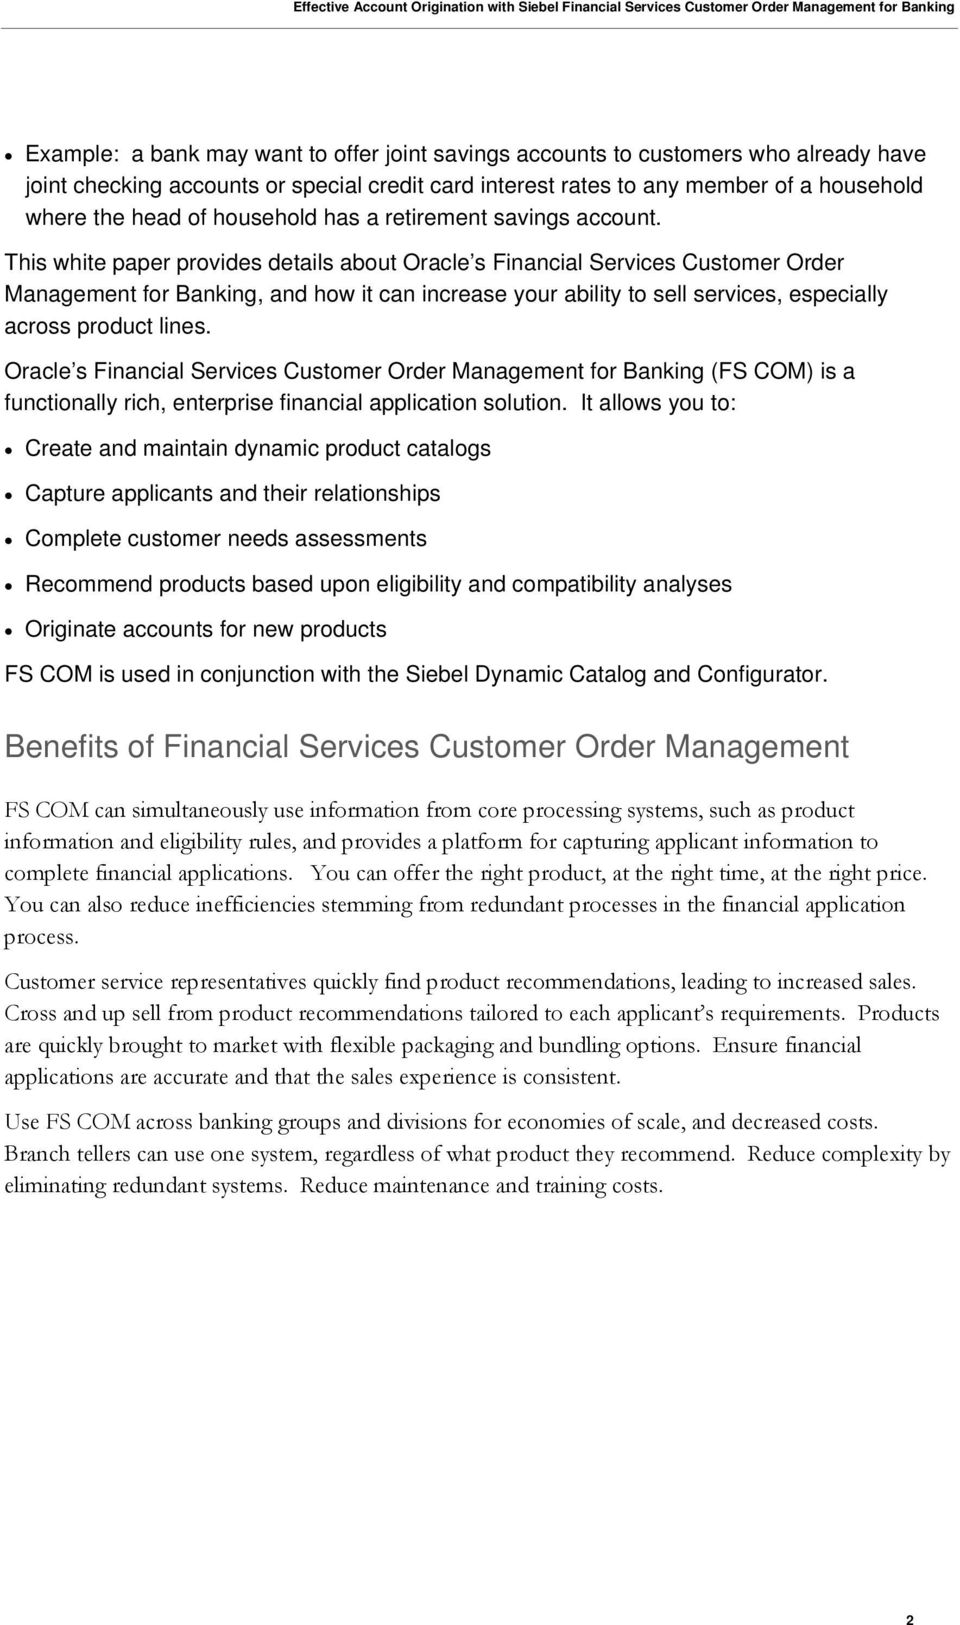 This white paper provides details about Oracle s Financial Services Customer Order Management for Banking, and how it can increase your ability to sell services, especially across product lines.